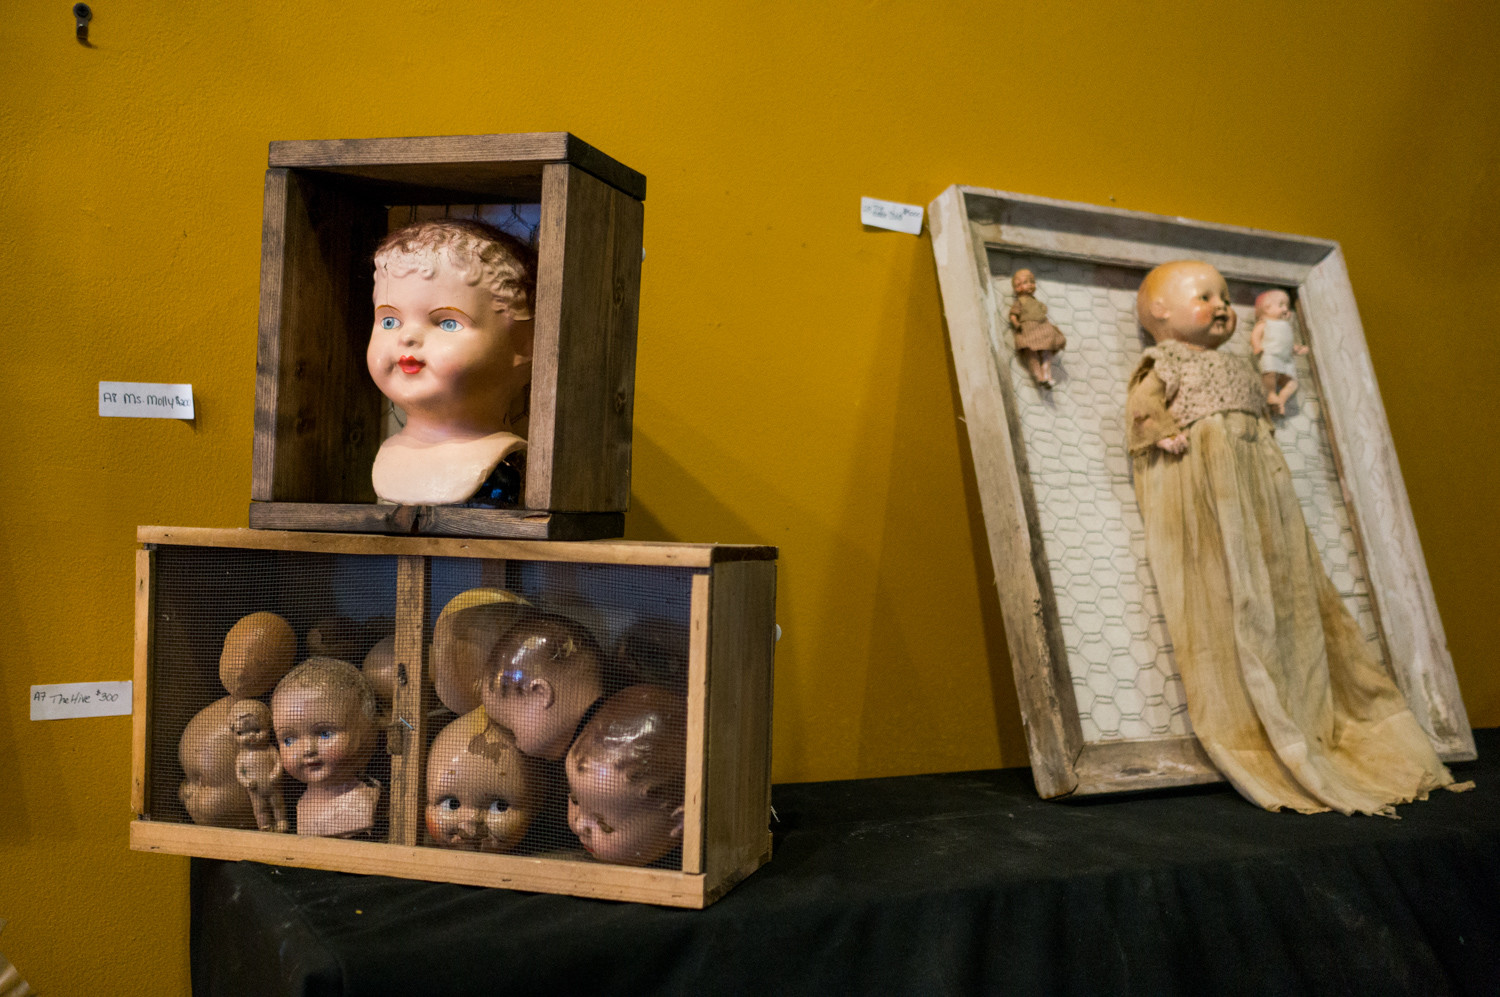 The Creepy Baby Project is a mix of photographs and objects.